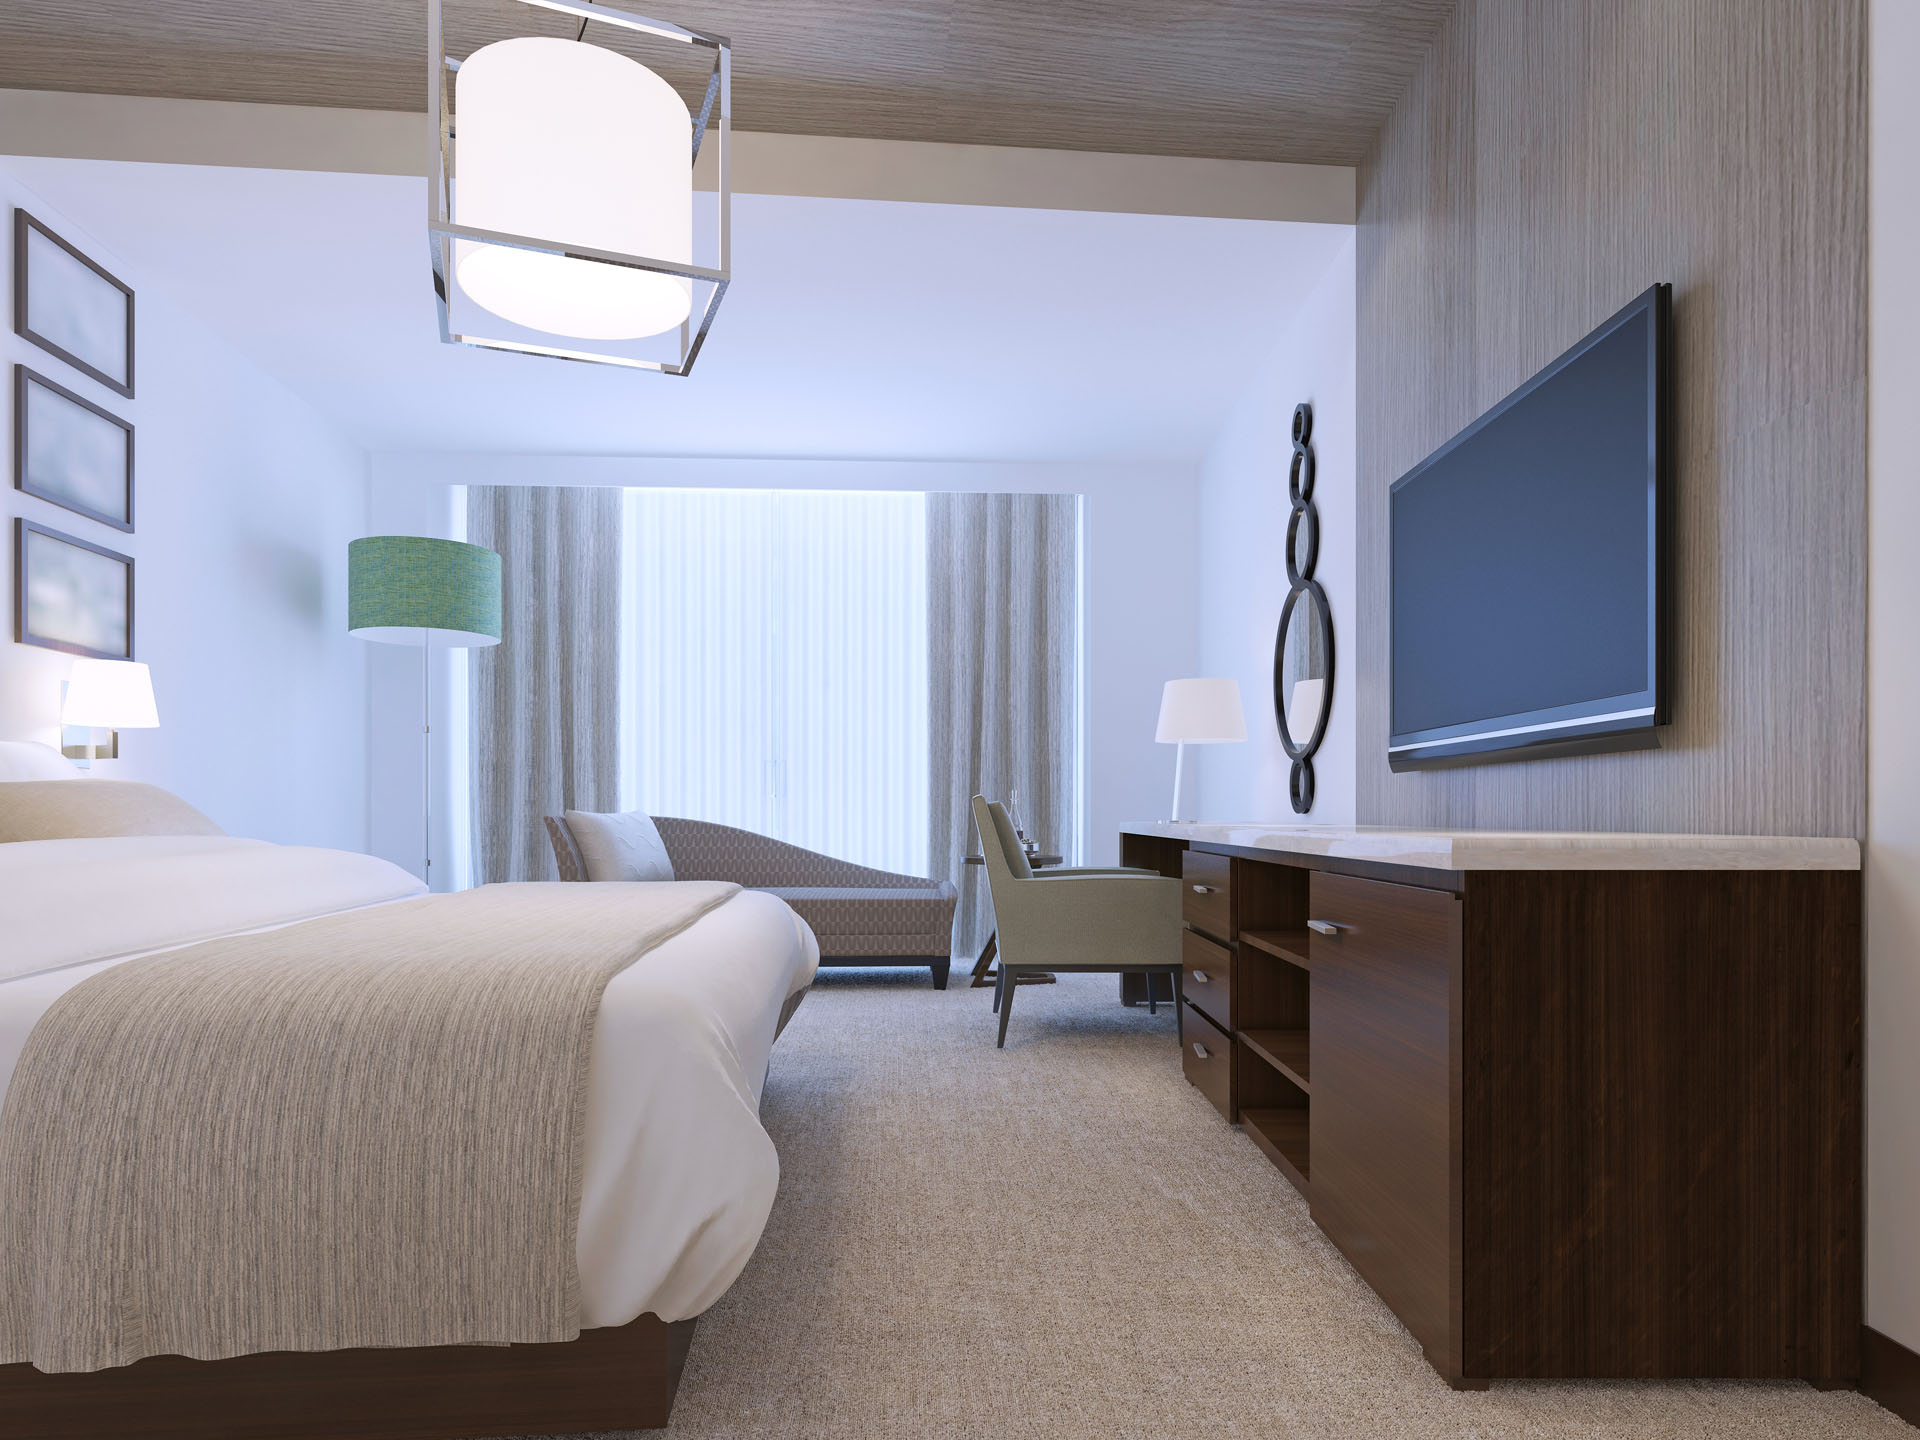 Low Voltage Data Ethernet Video Wiring Wall Mounted Tvs And In Speakers For Tv From To Wireless Access Points Haven Electric Can Help Keep You Up Date With The Latest Technology